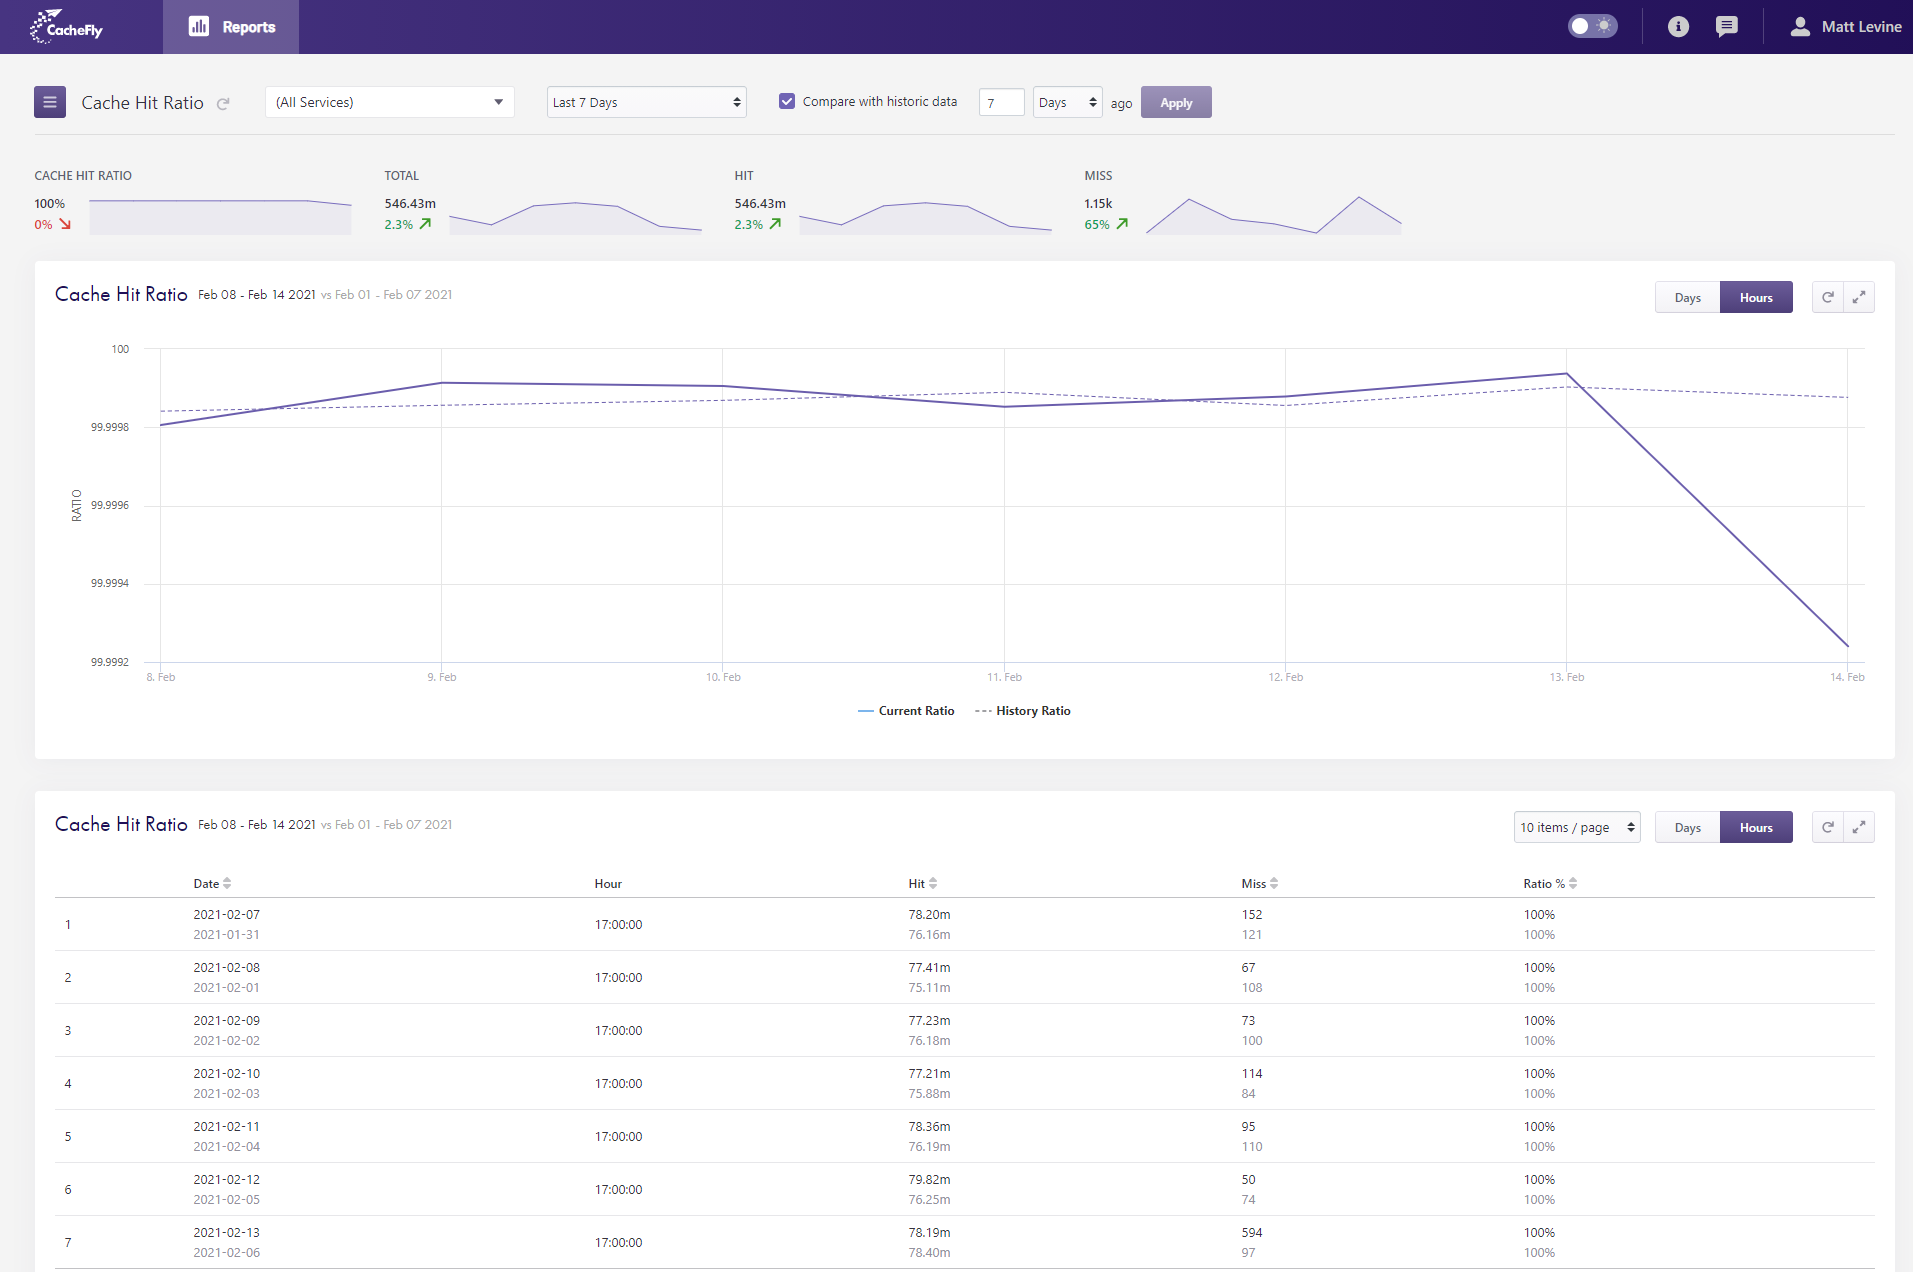 Stats Dashboard Cache Hit Ratio New Portal View